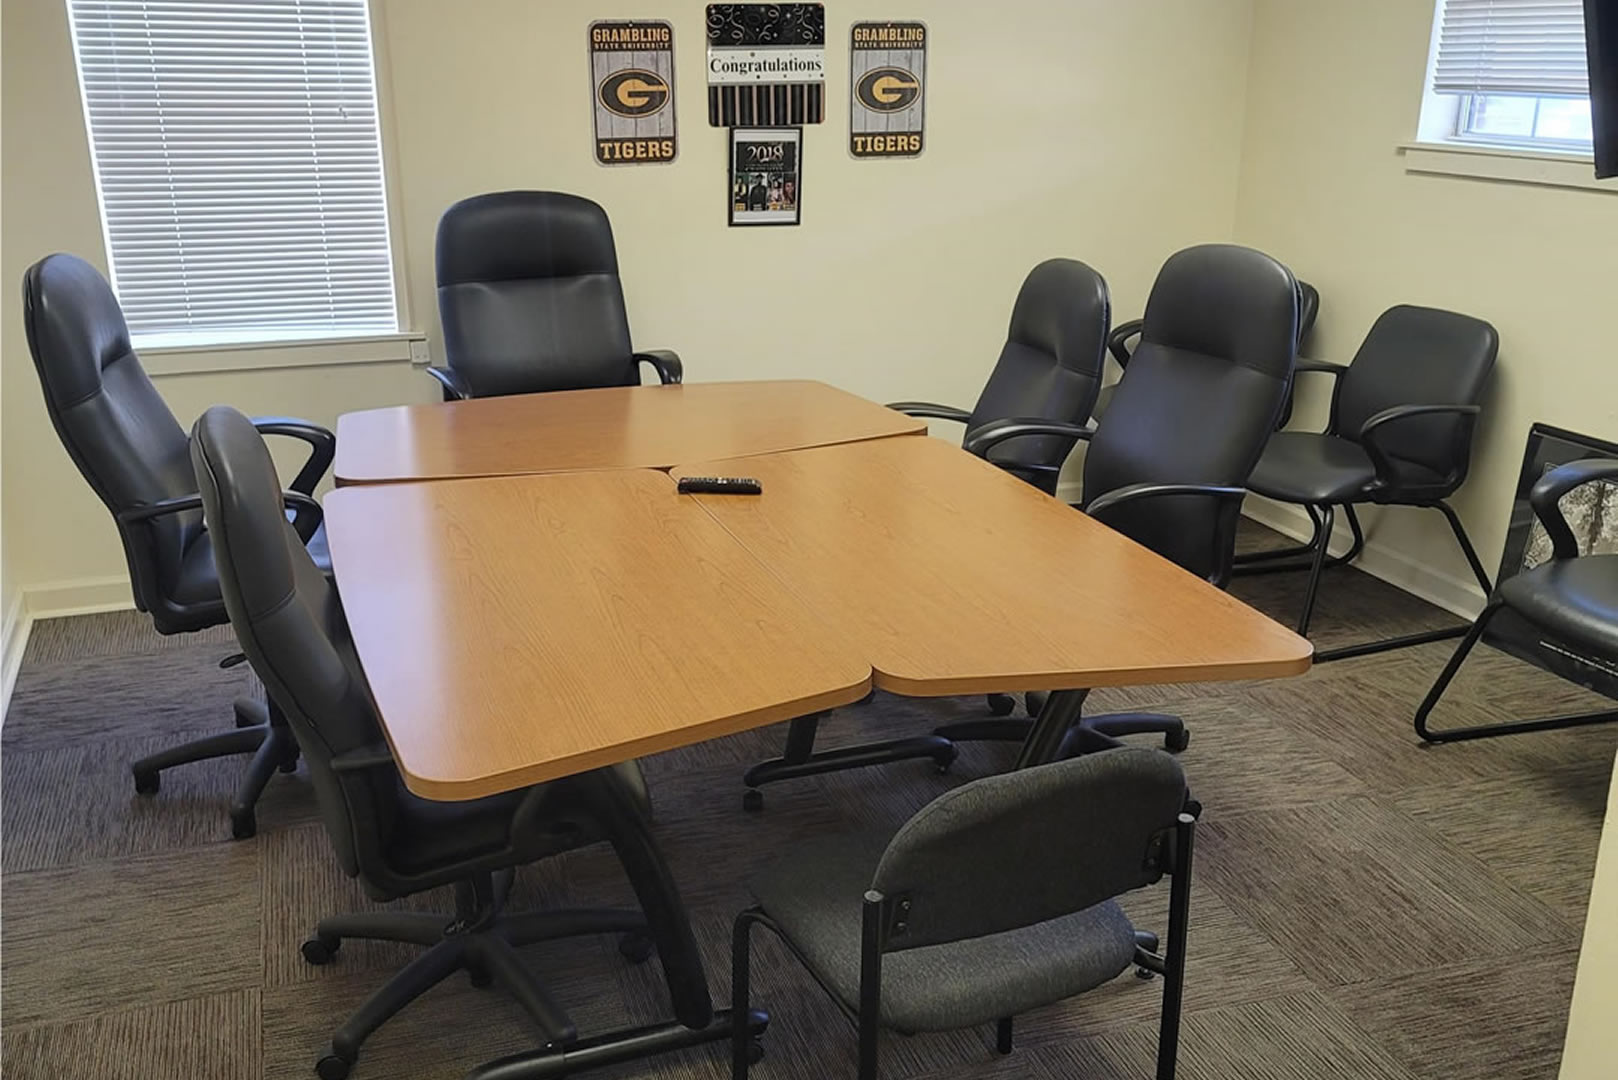 Office of Student Conduct - Hearing Room